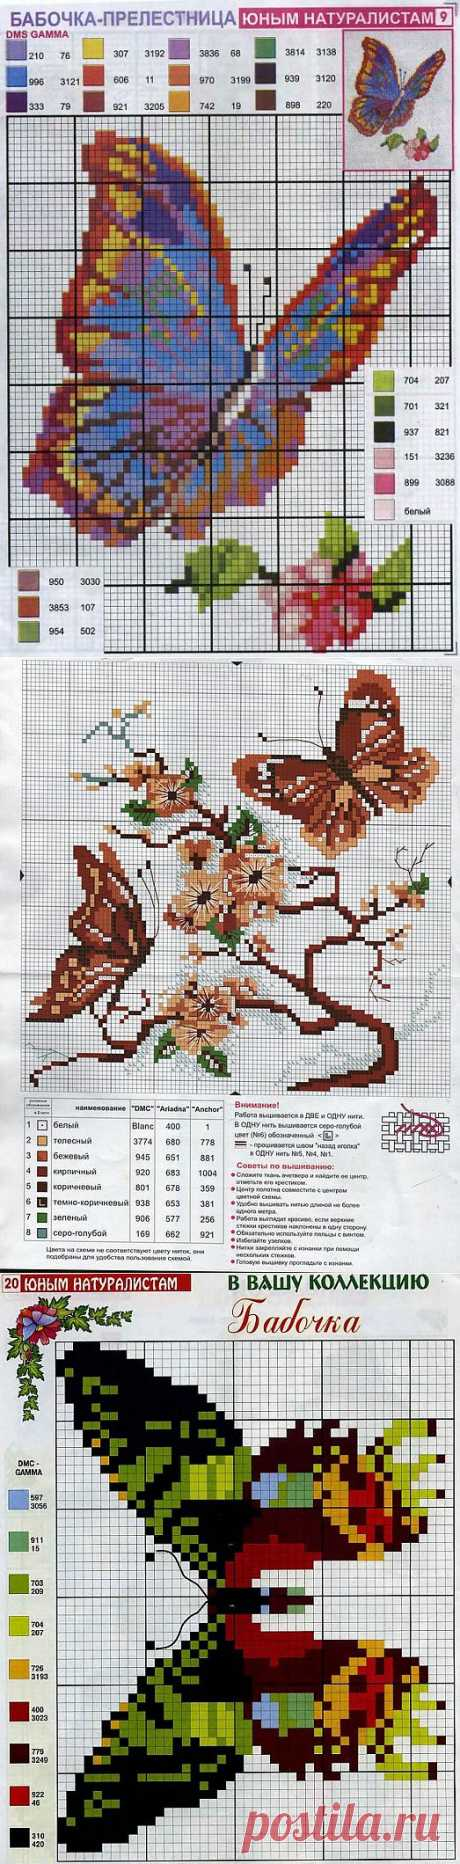 Schemes of an embroidery of butterflies of the cross \/ Scheme of an embroidery cross \/ PassionForum - master classes in needlework